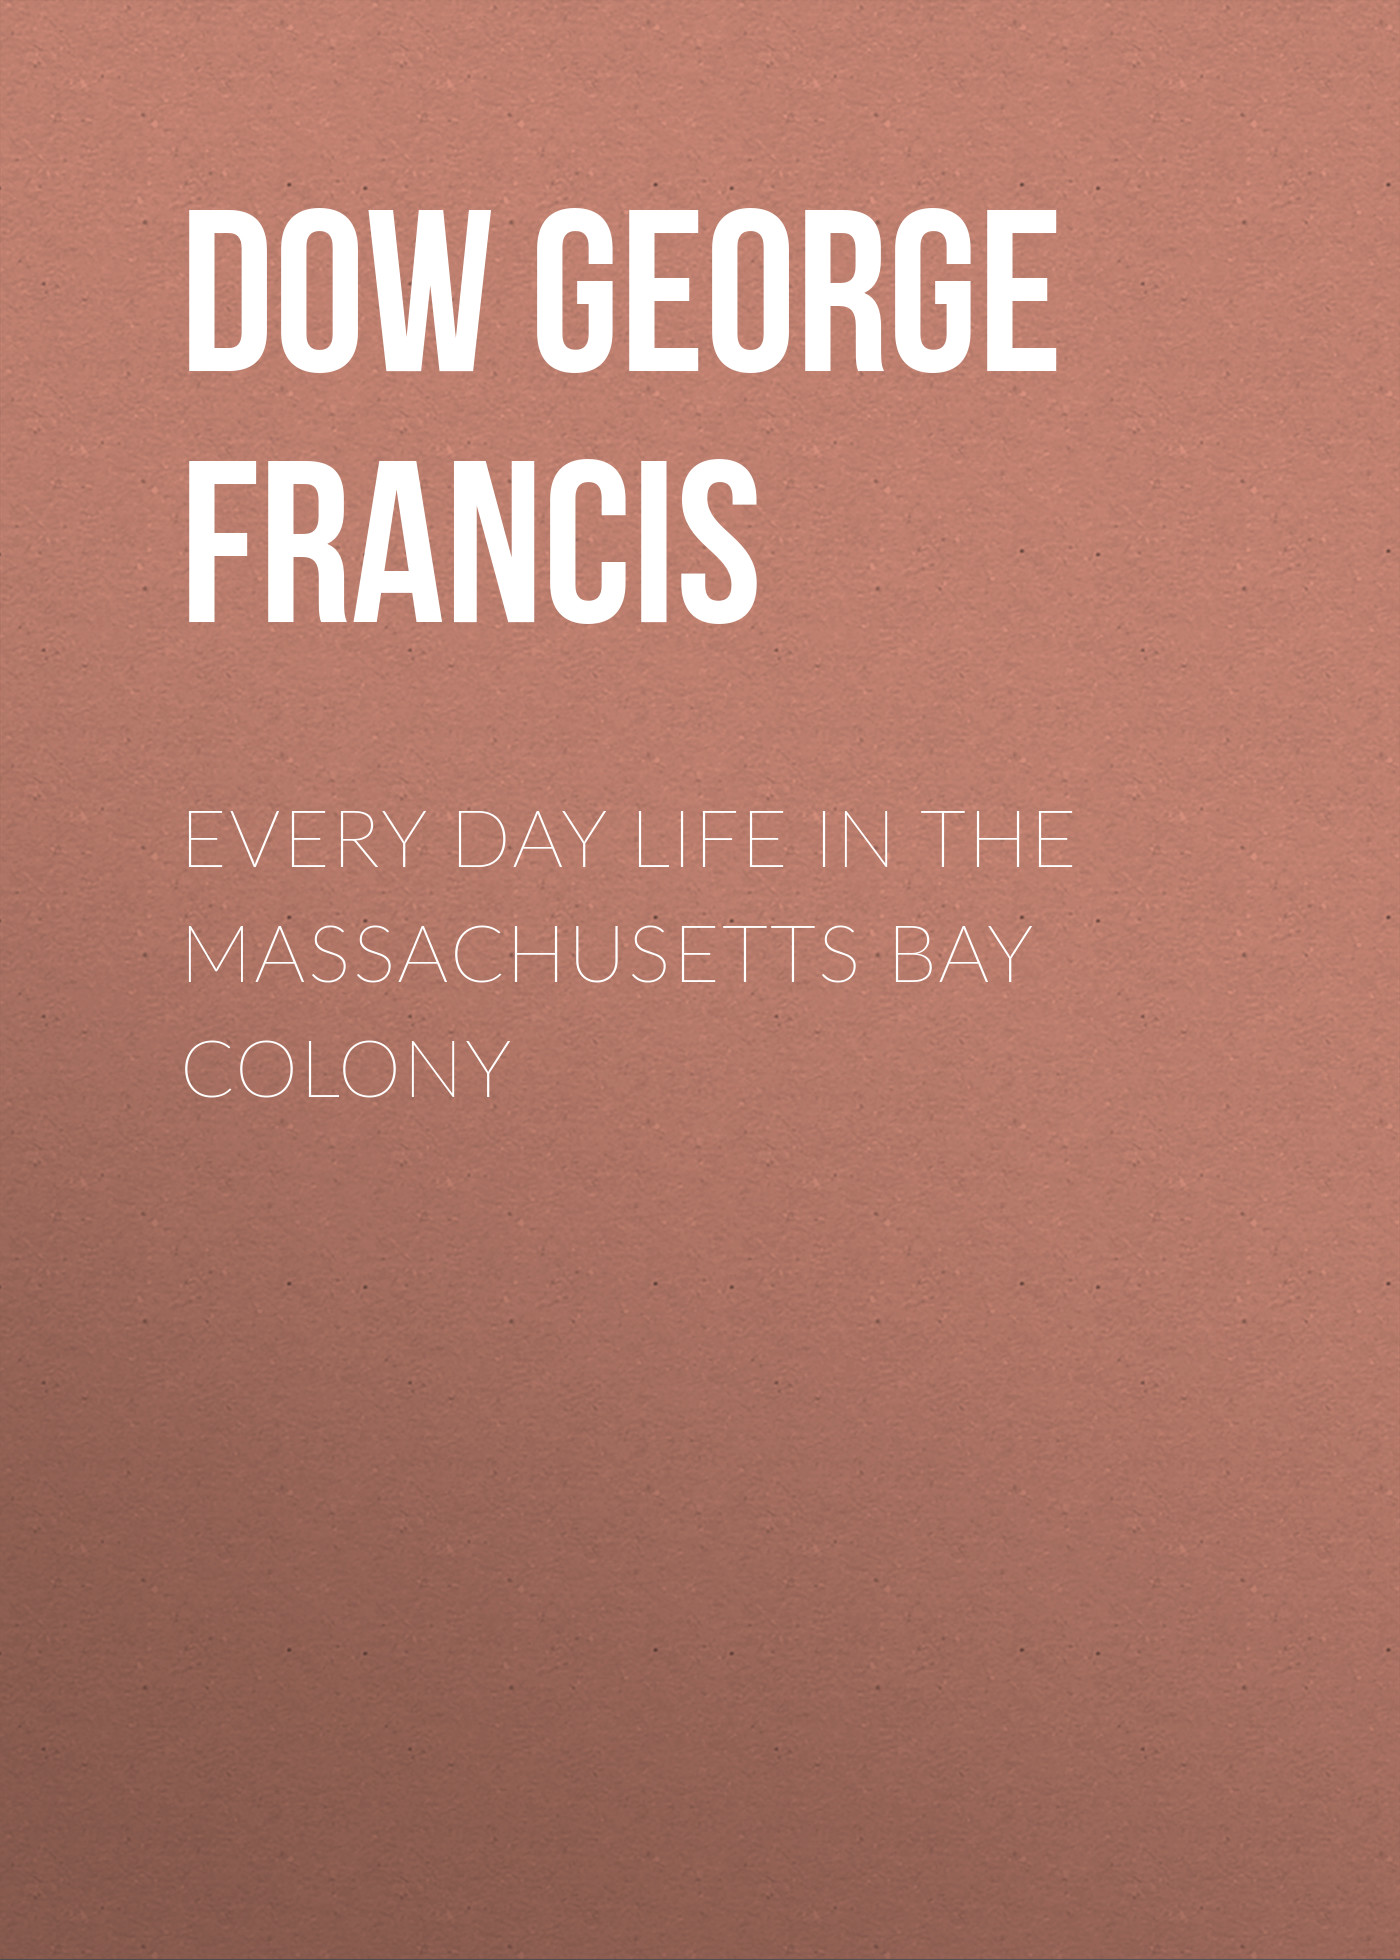 Dow George Francis Every Day Life in the Massachusetts Bay Colony gasquet francis aidan english monastic life